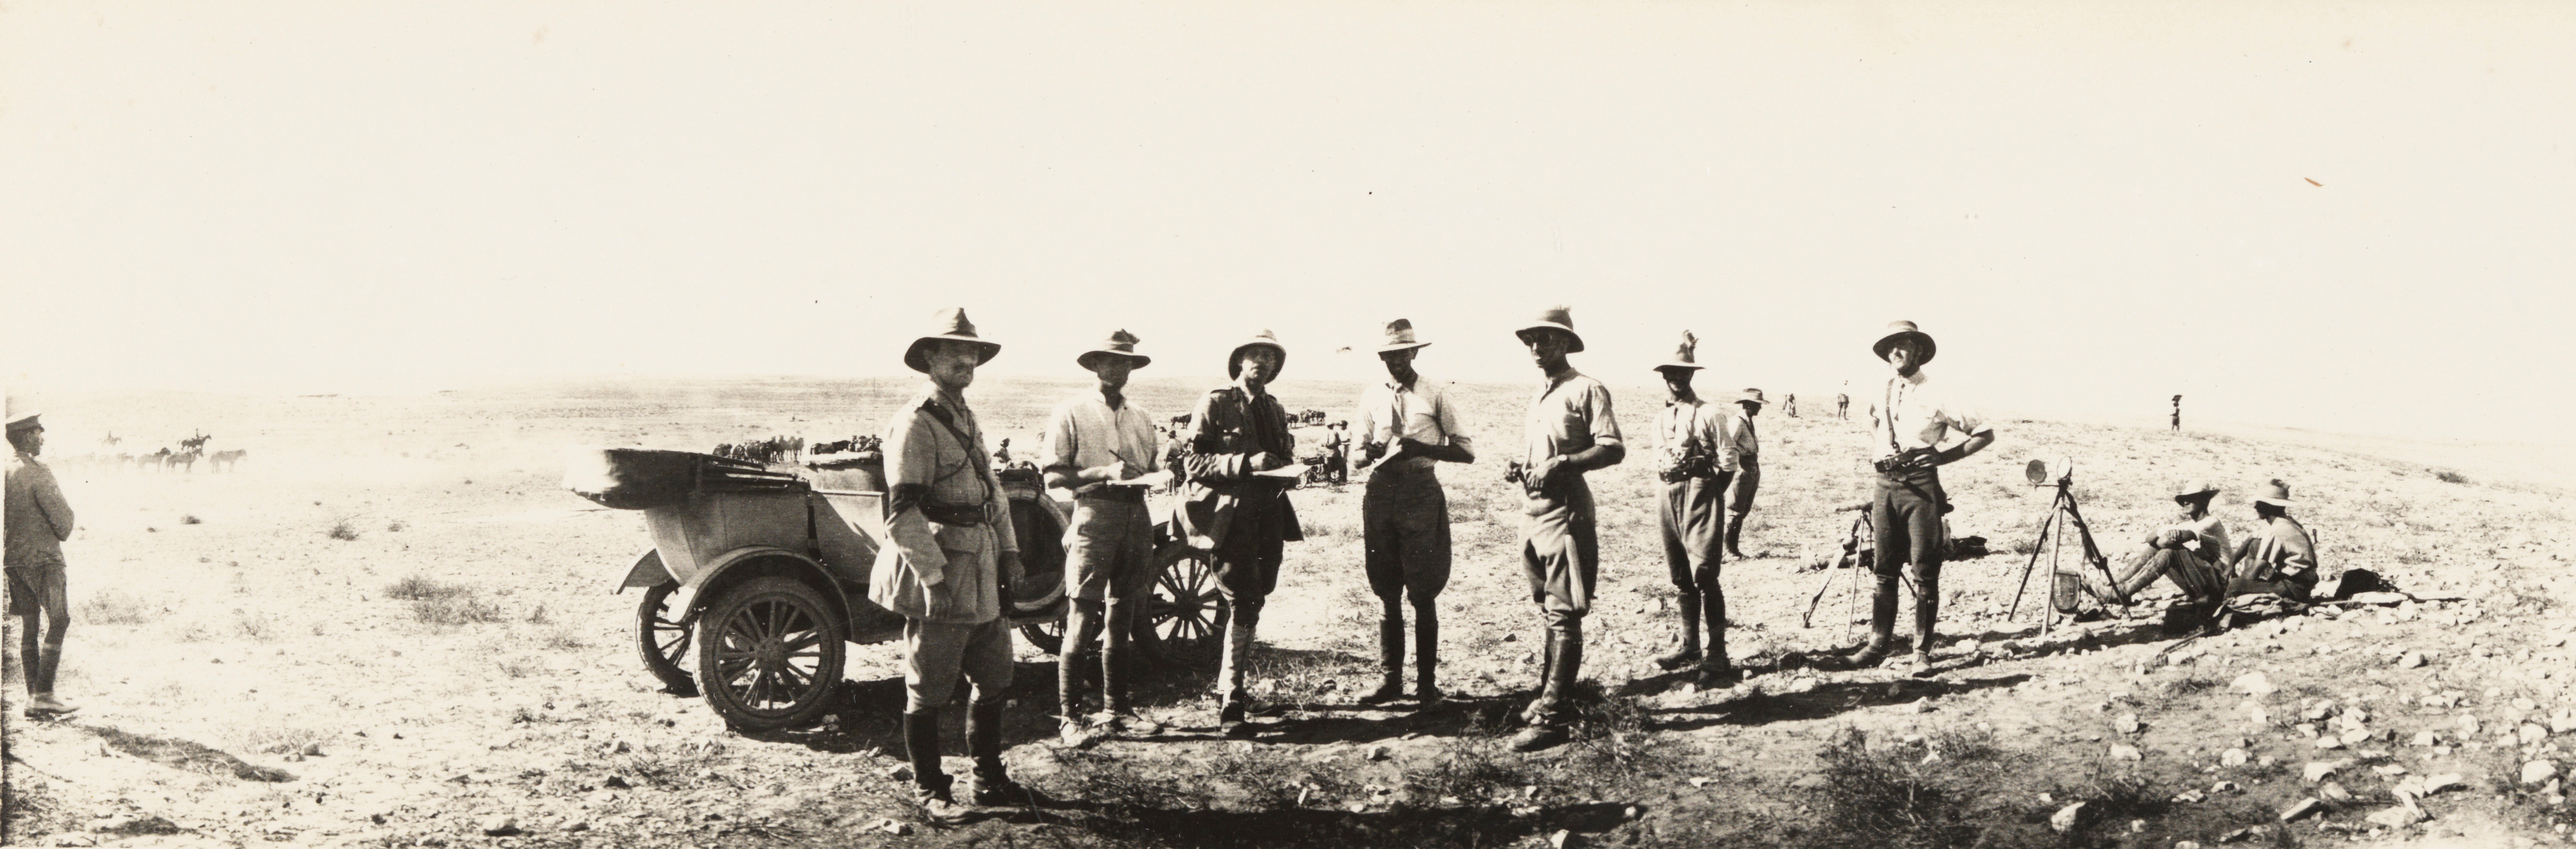 Major General EW Chaytor with staff and Model T Ford Utility, Palestine, 1917, James Allan Chauvel, State Library of New South Wales,